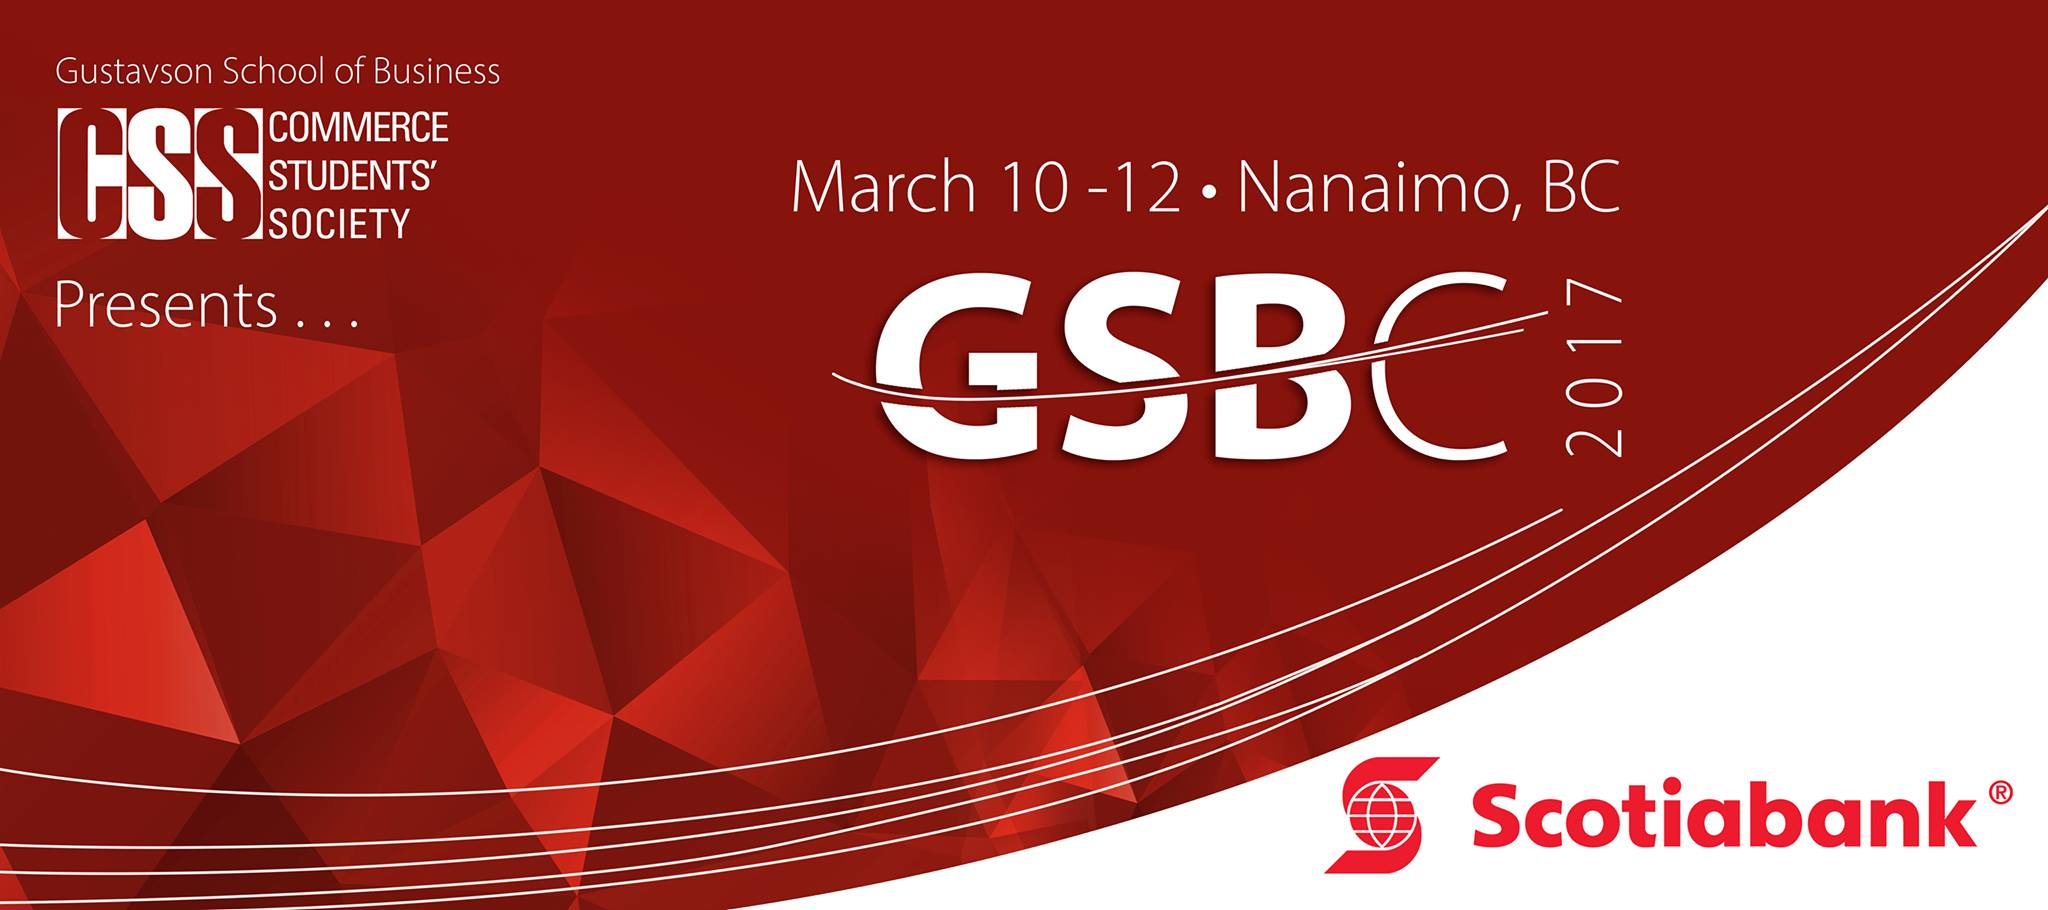 GSBC Co-Chair 2017  - From summer of 2016 through March 2017, I co-chaired the annual business conference. The weekend-long event is designed to connect commerce students with their peers and industry leaders, as well as to acquire new skills.